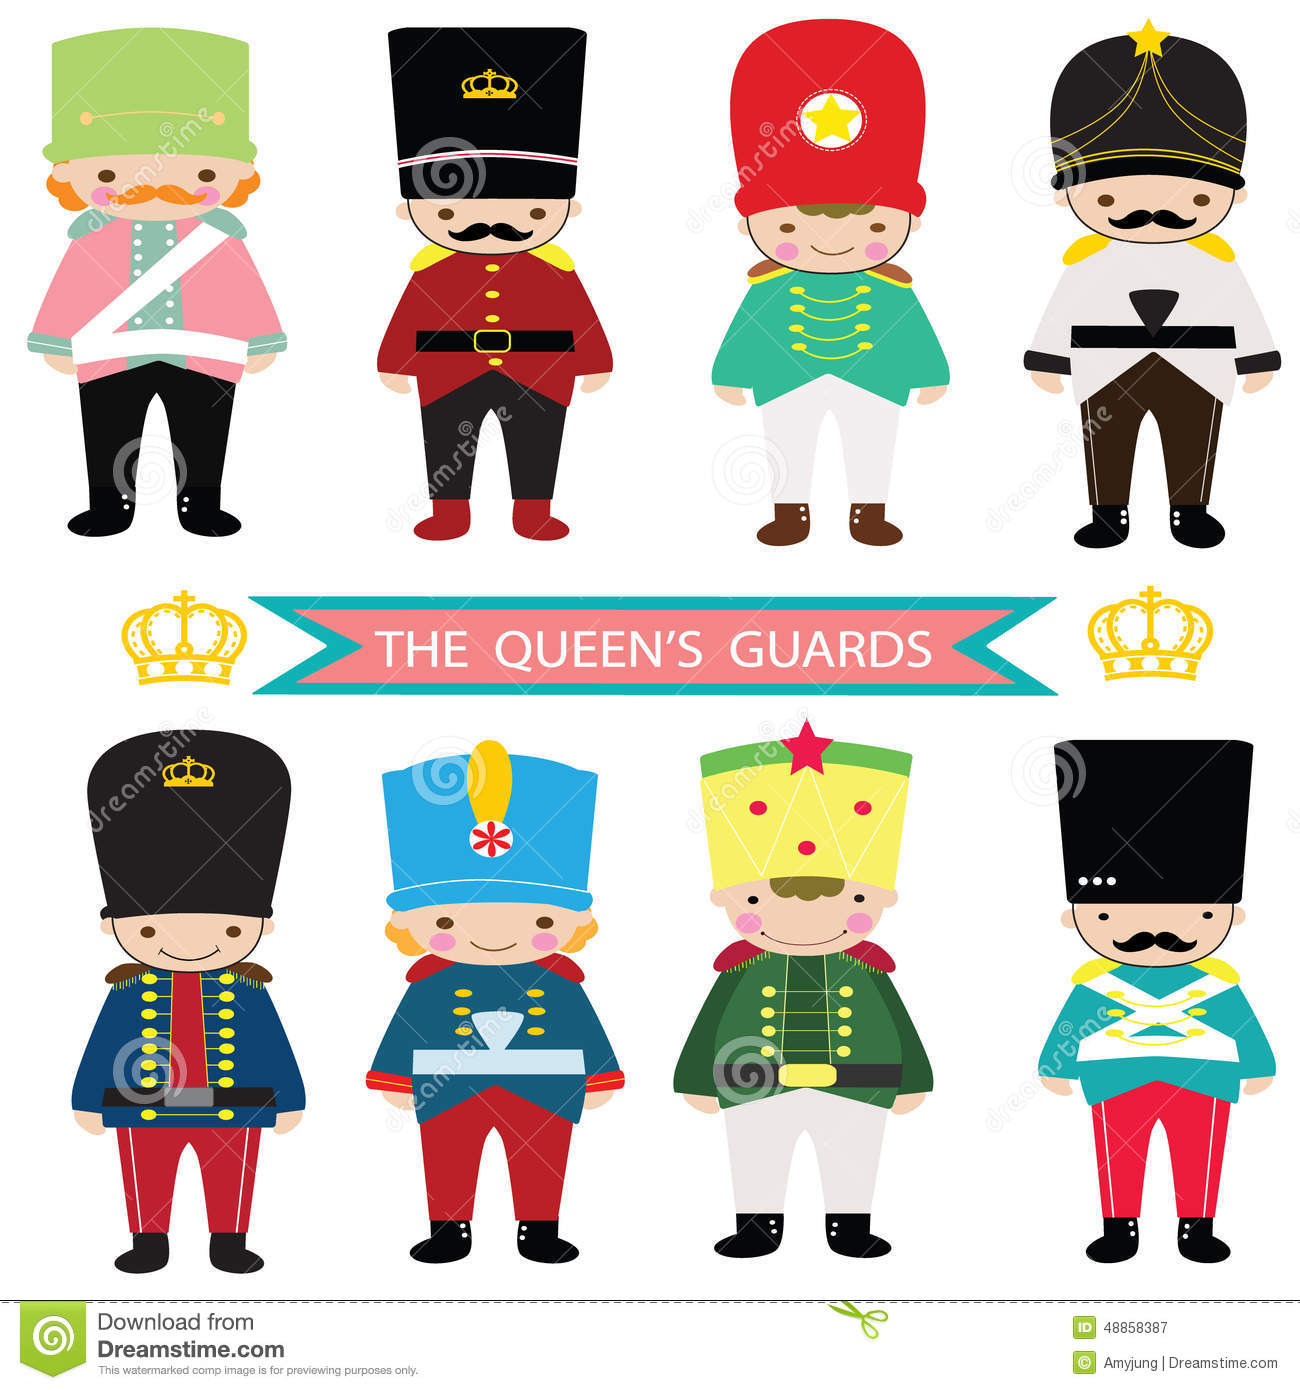 Queens Guards Toy SoldiernutcrackerUK GuardsUK